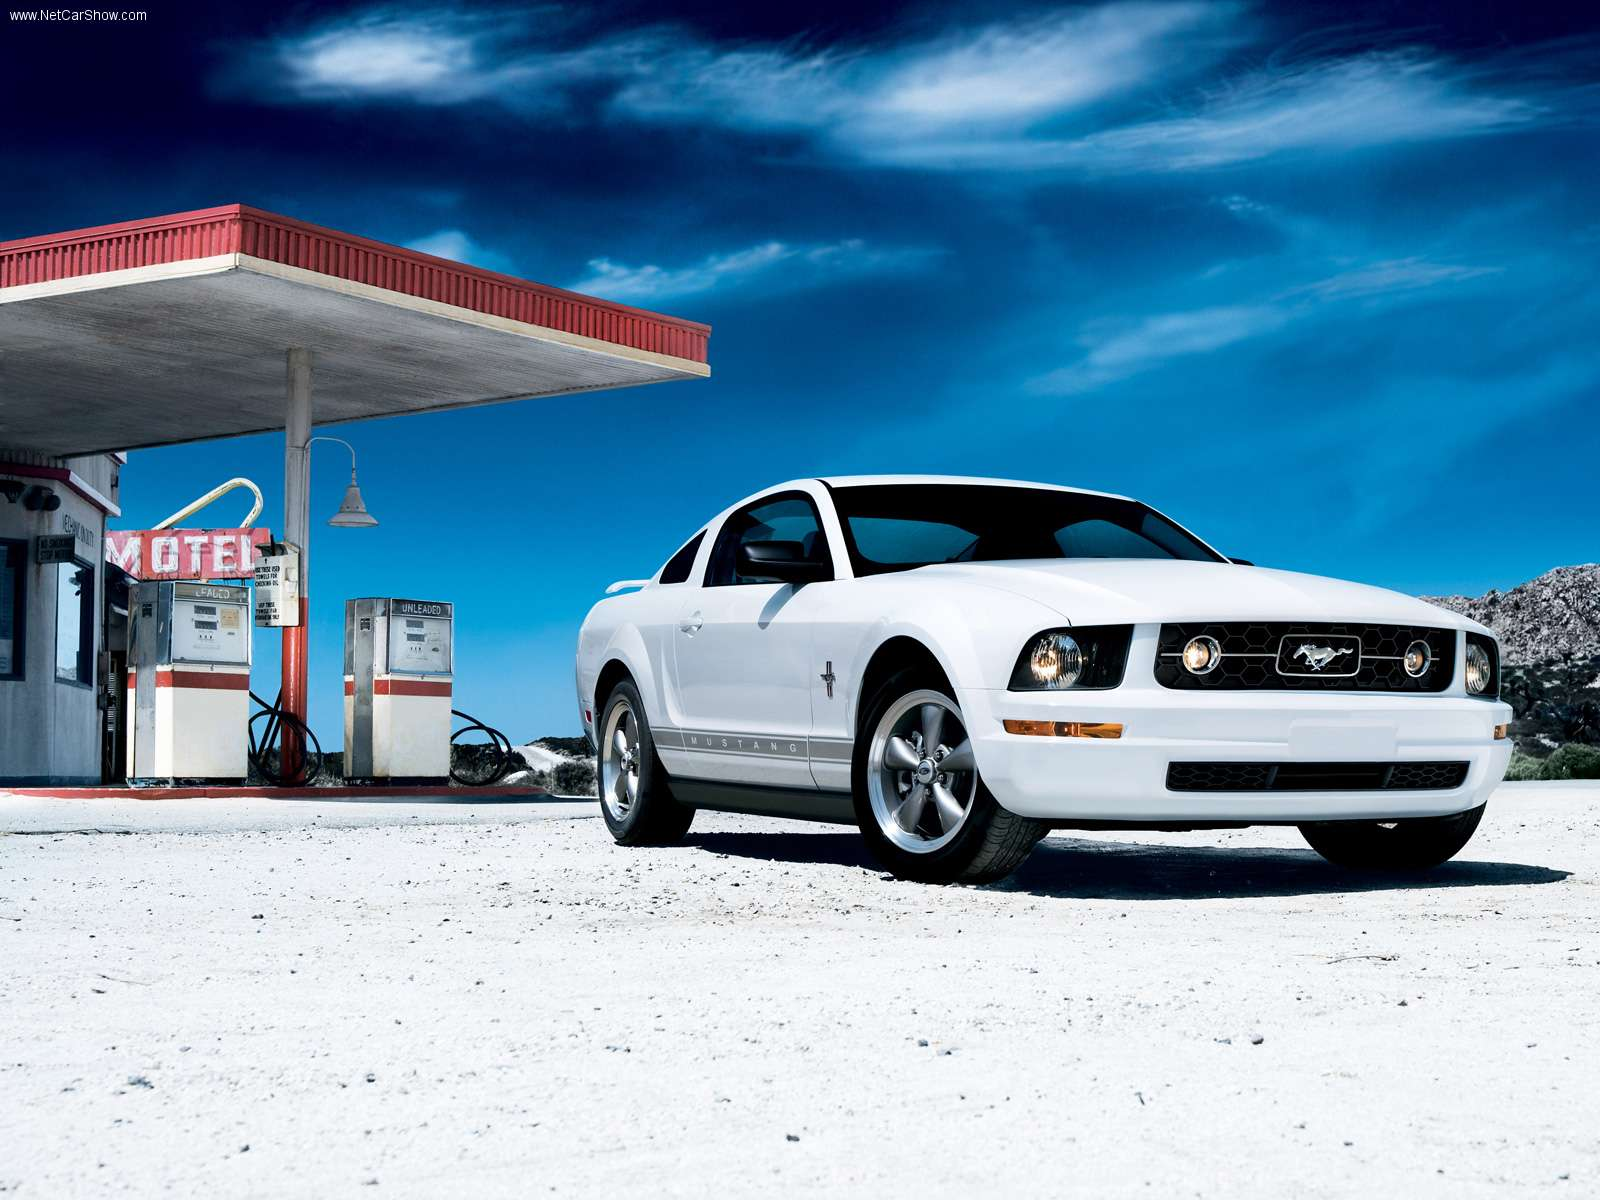 Ford Mustang white #3